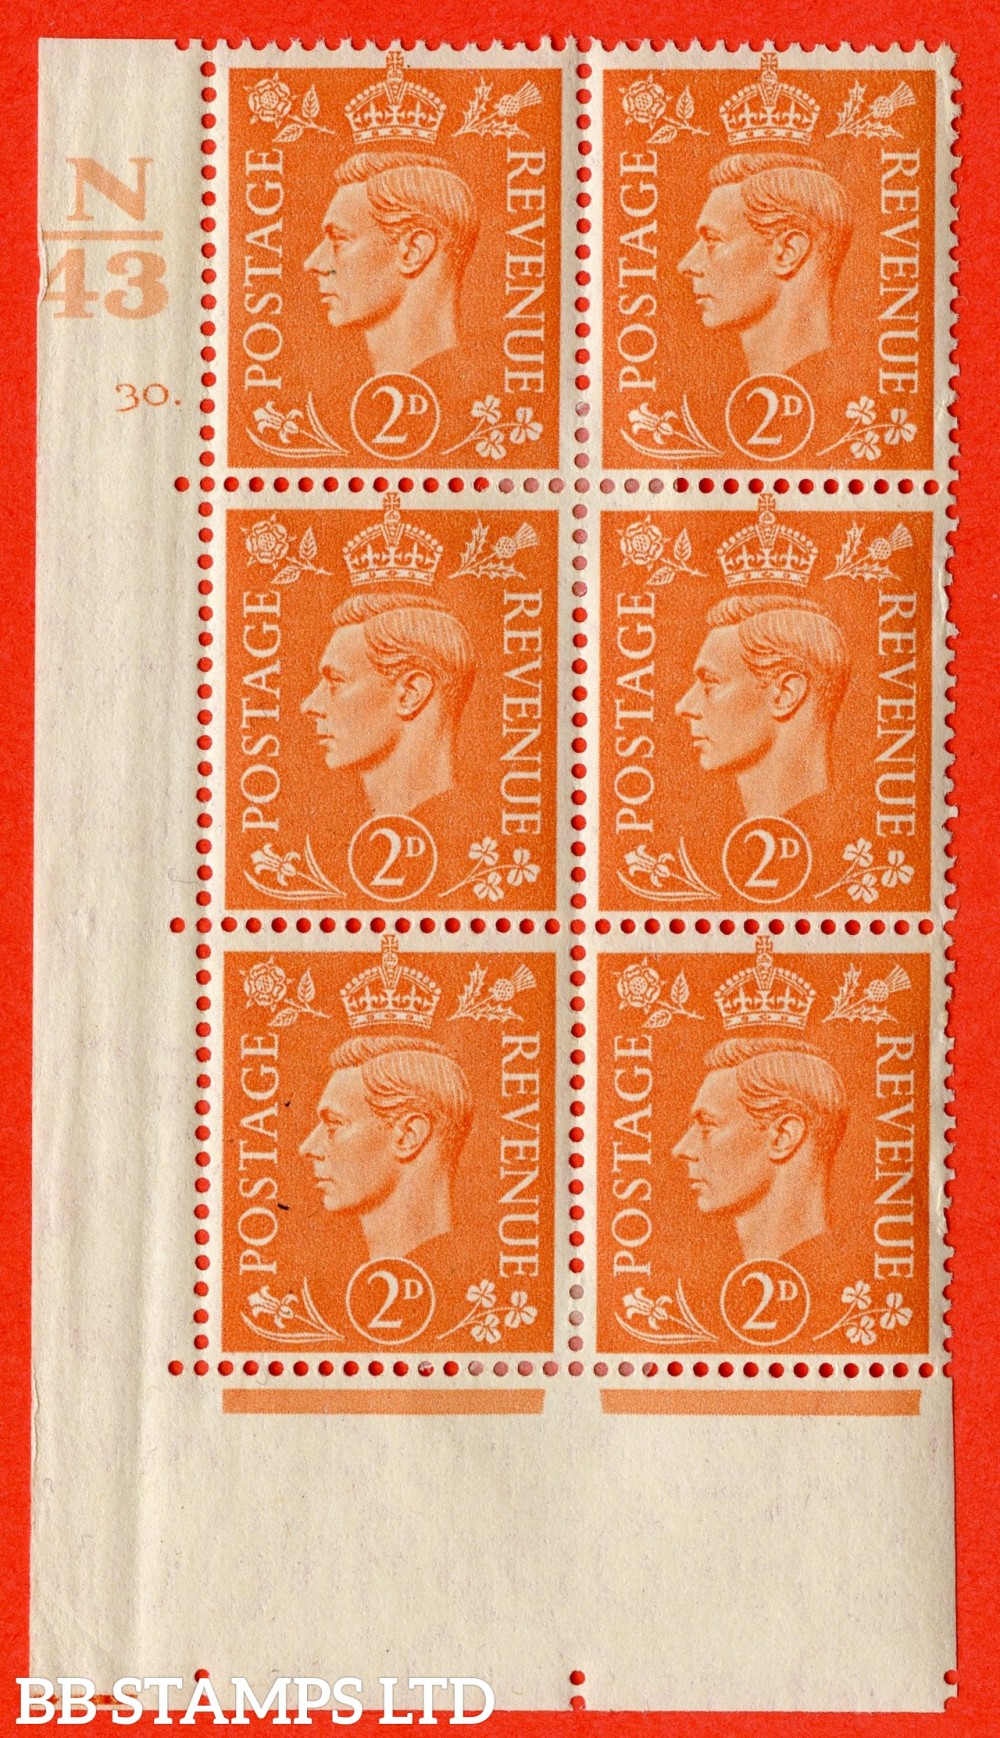 "SG. 488. Q11. 2d Pale Orange. A fine ligthtly mounted mint "" Control N43 cylinder 30 dot "" control block of 6 with perf type 5 E/I."